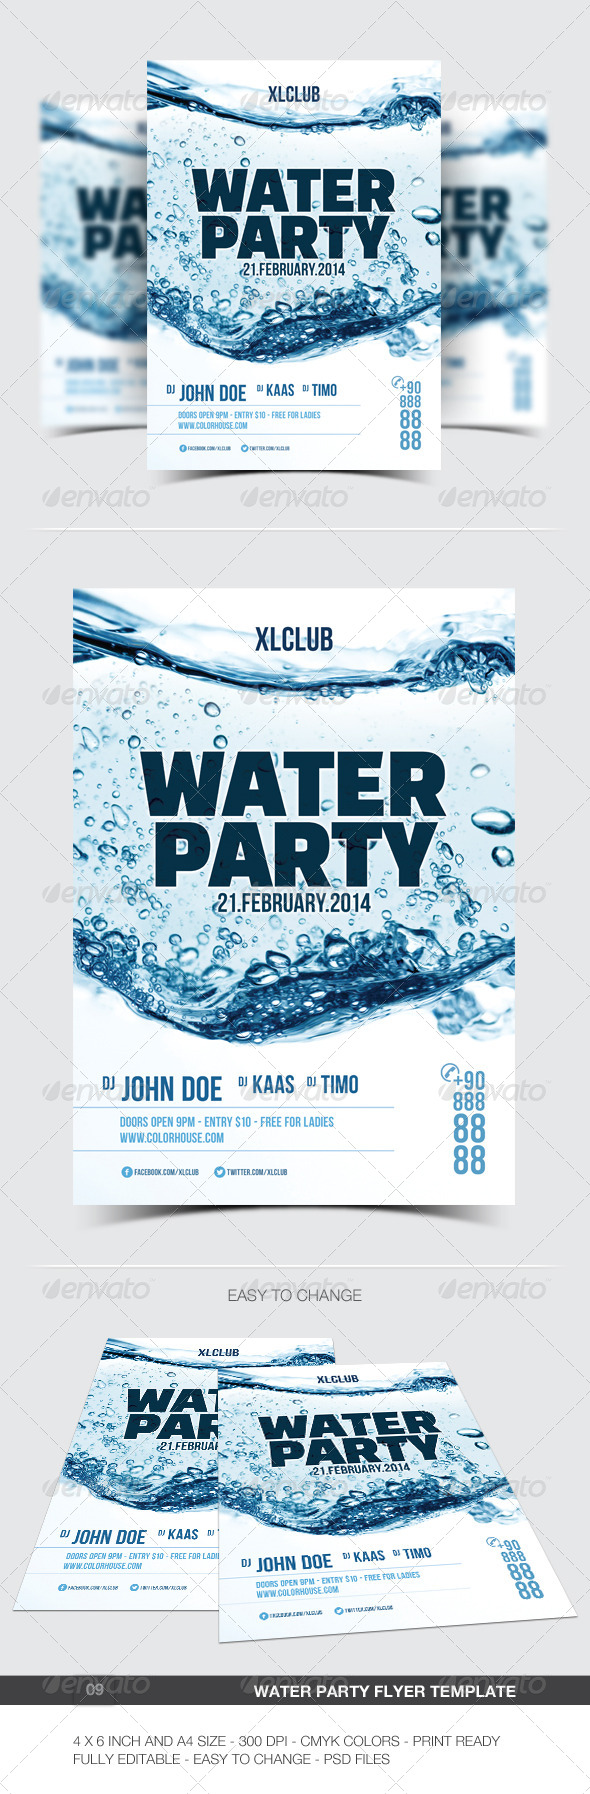 Water Party Flyer/Poster - 09 - Clubs & Parties Events